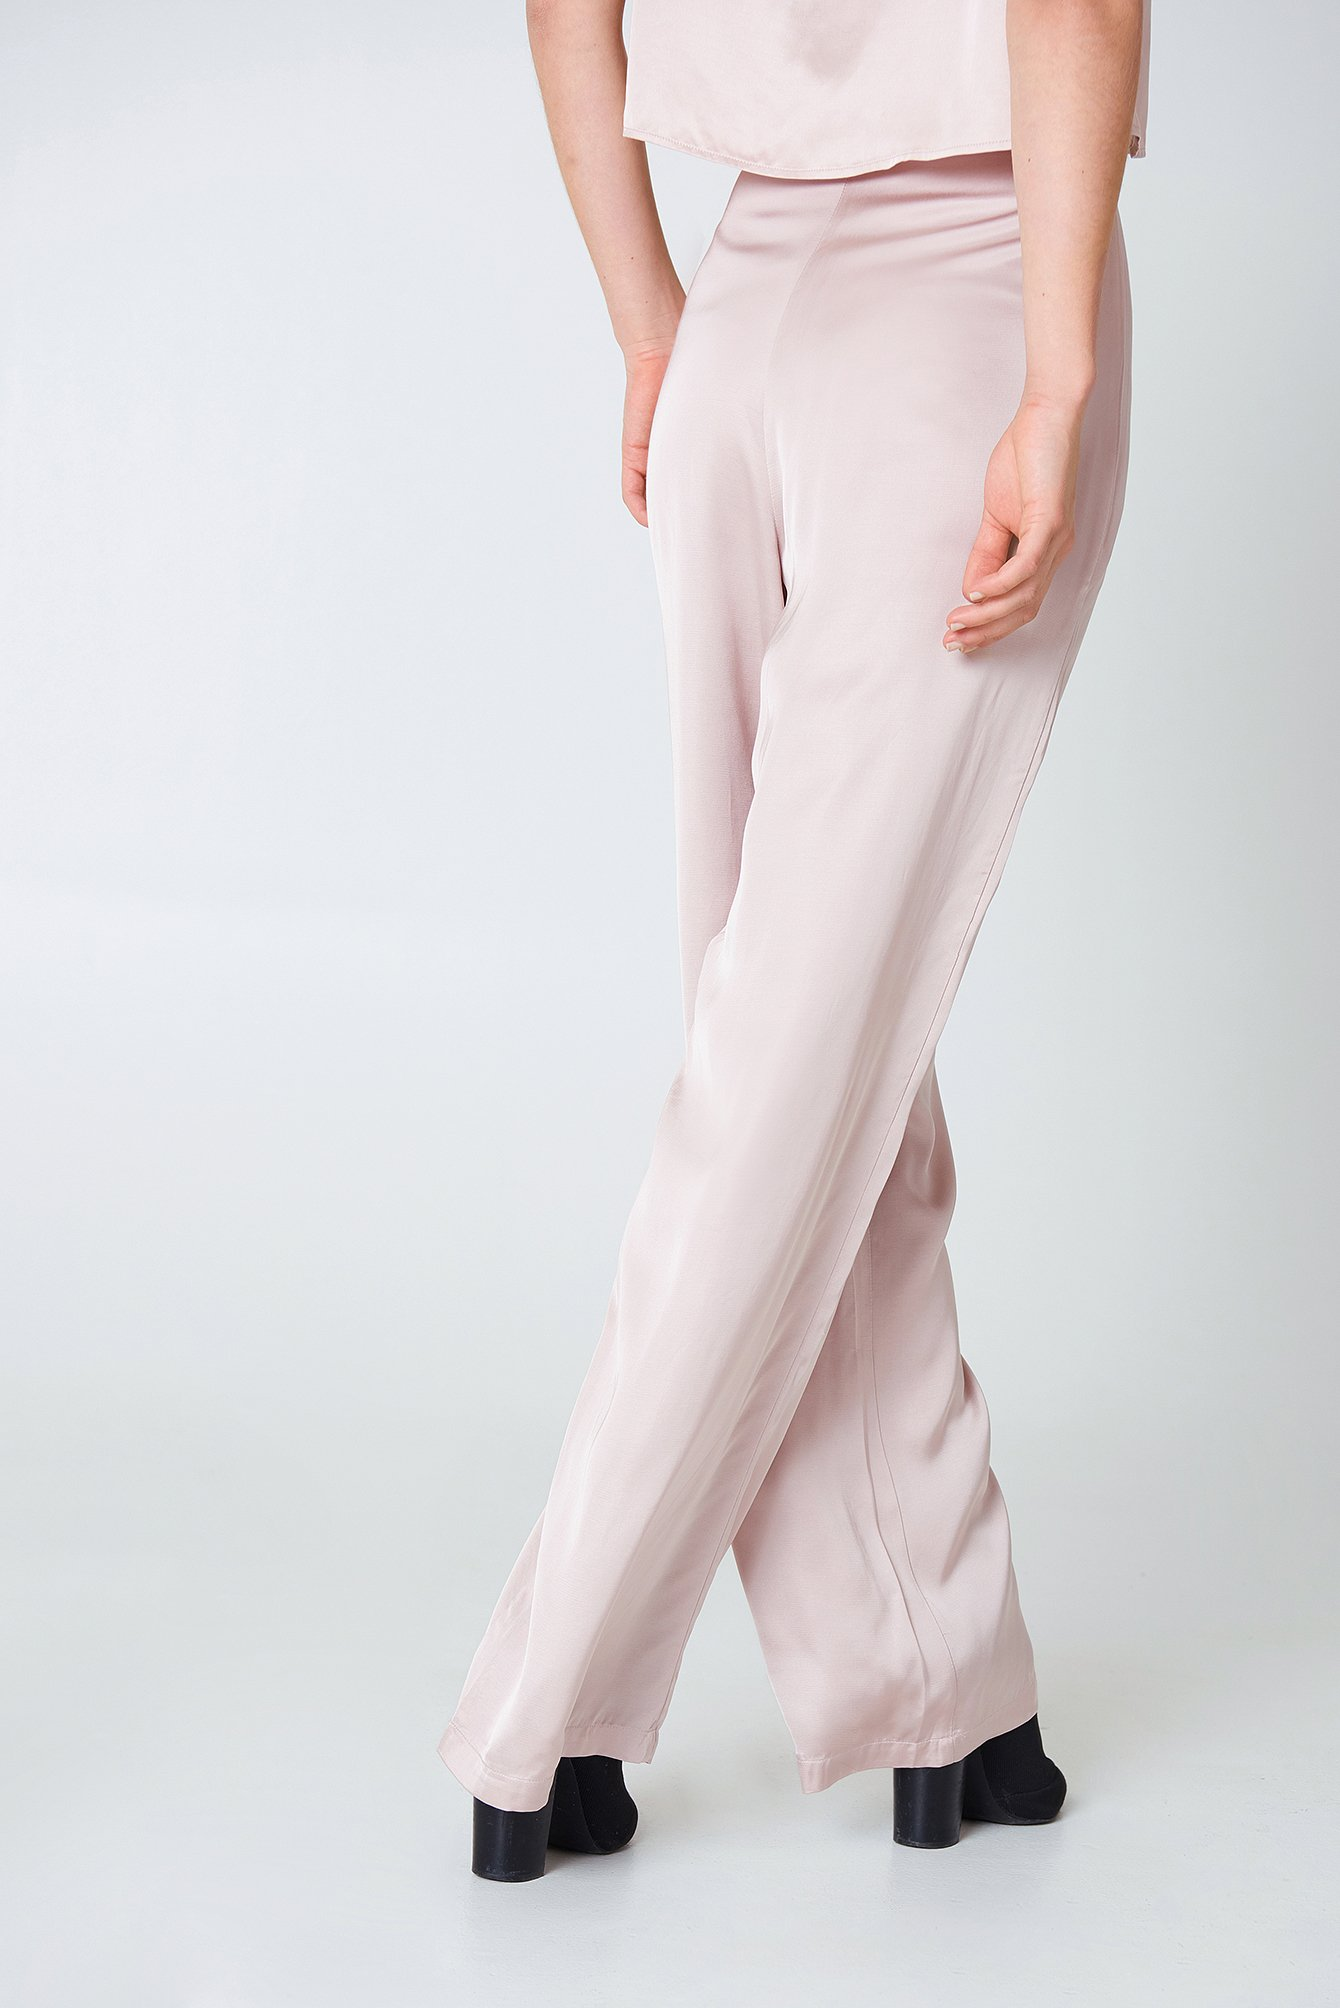 Nude Pink Flared Shiny Pants